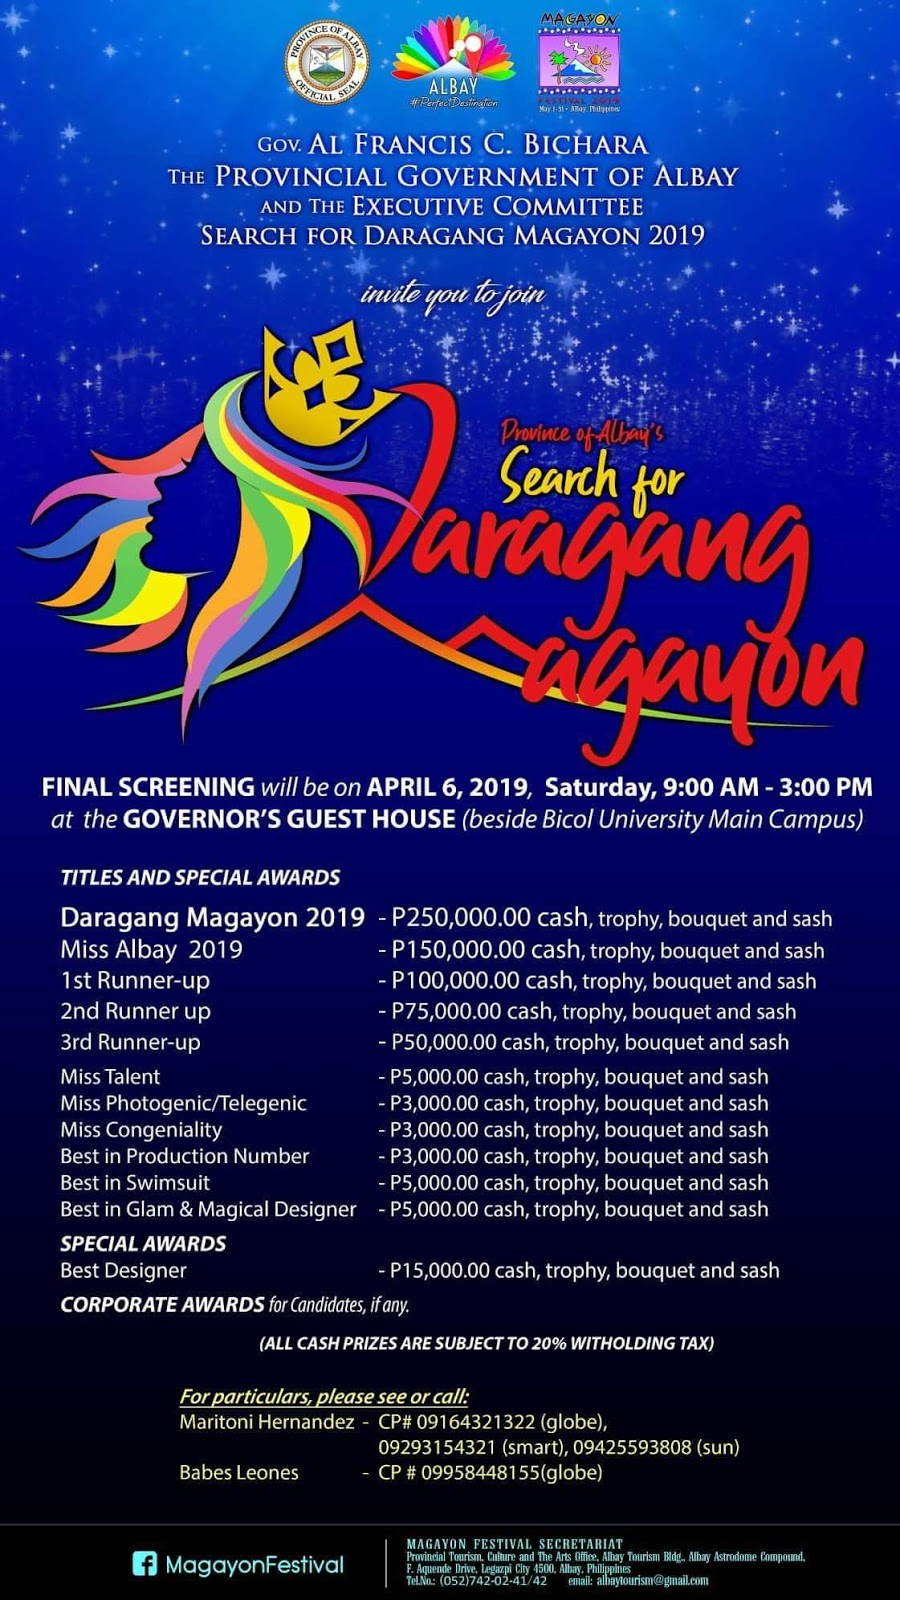 How to Win Daragang Magayon Crown?